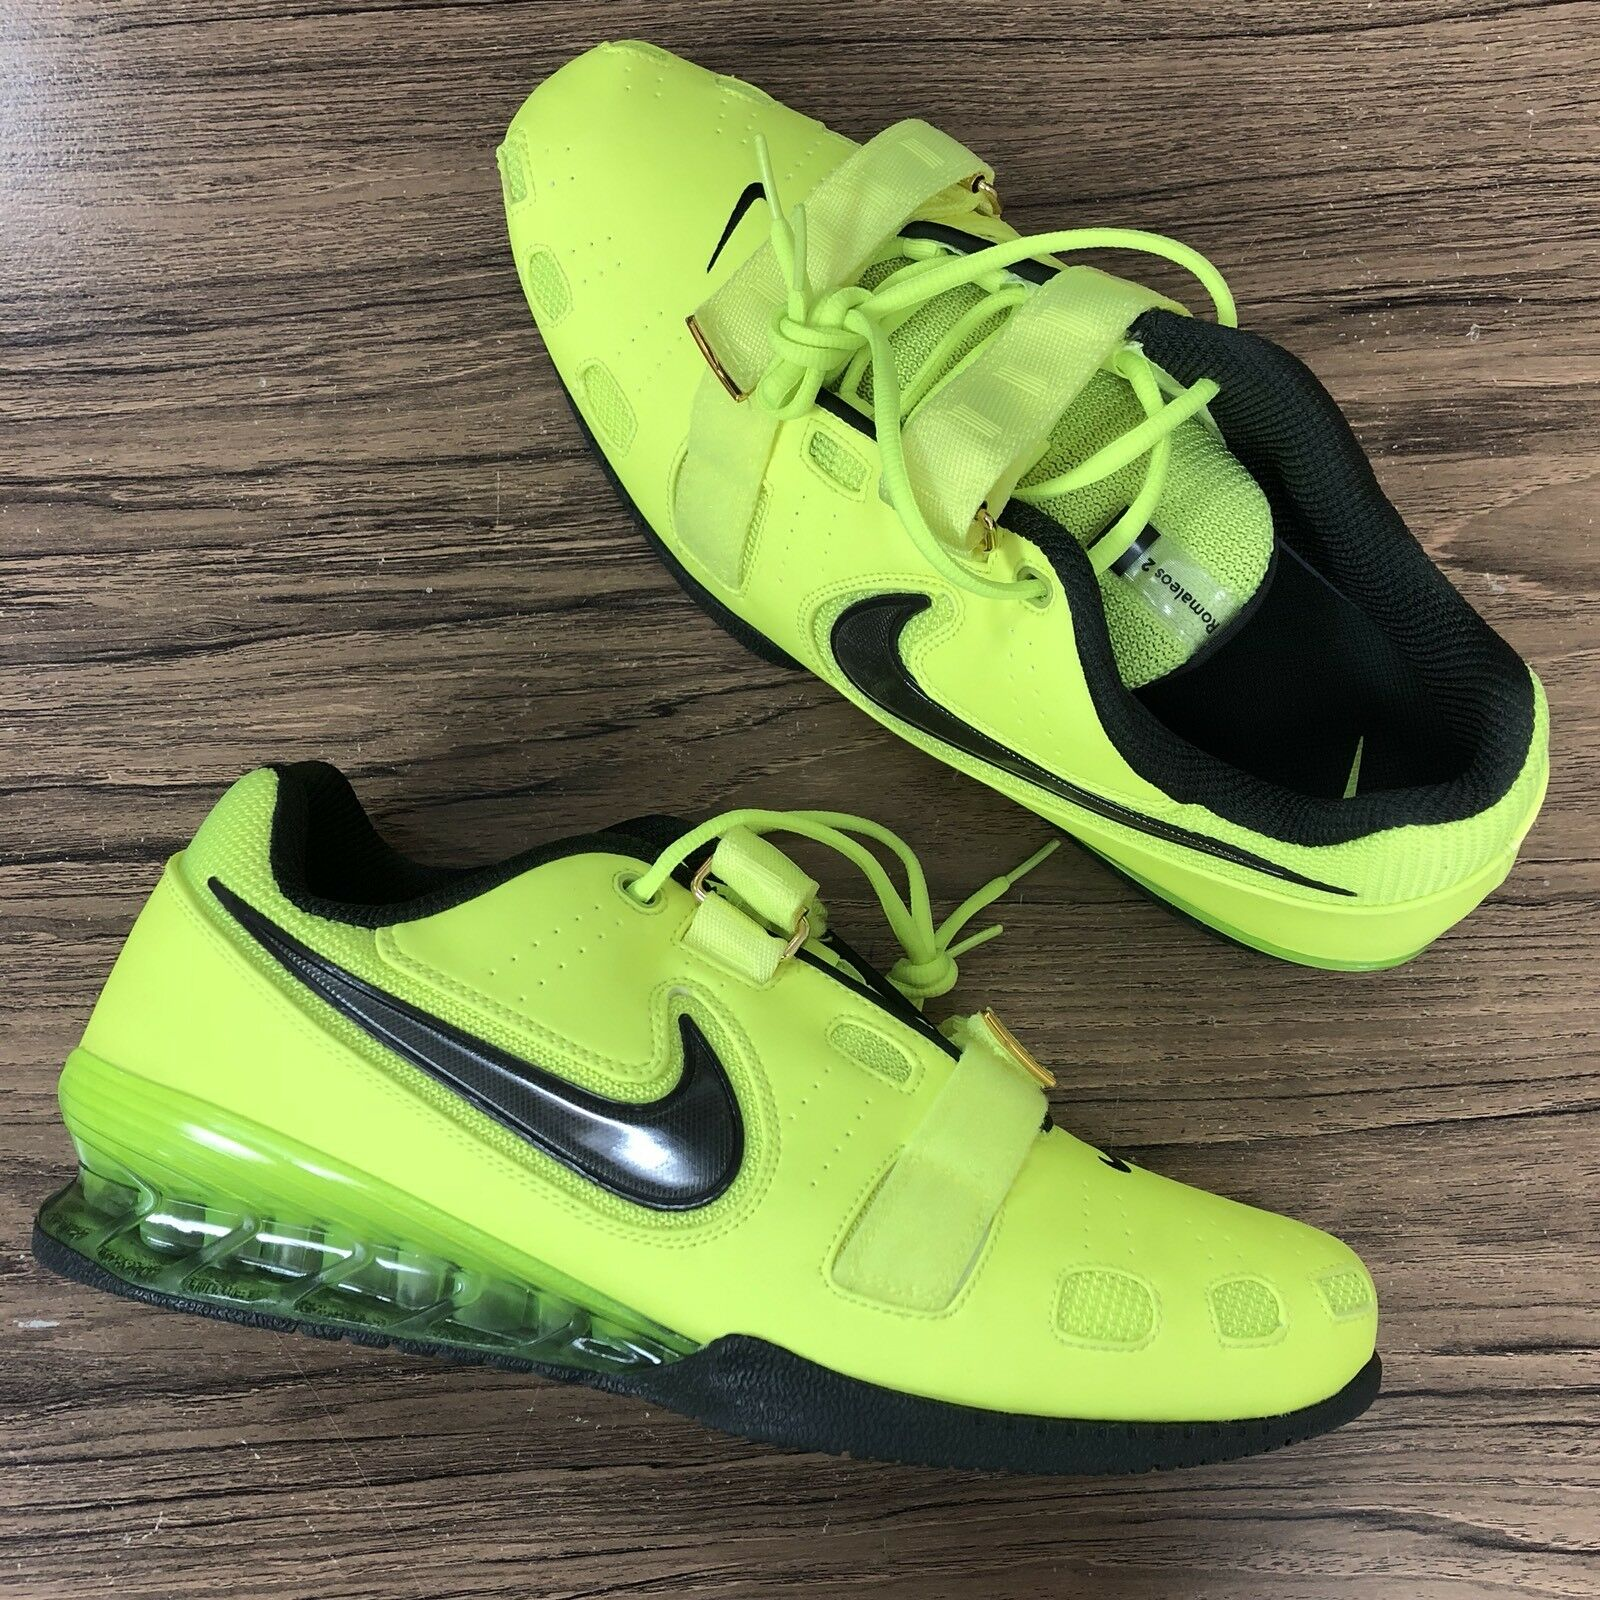 Nike Romaleos 2 2 2 weightlifing shoes Size 15 Volt 476927-700 NEW a7a1c4